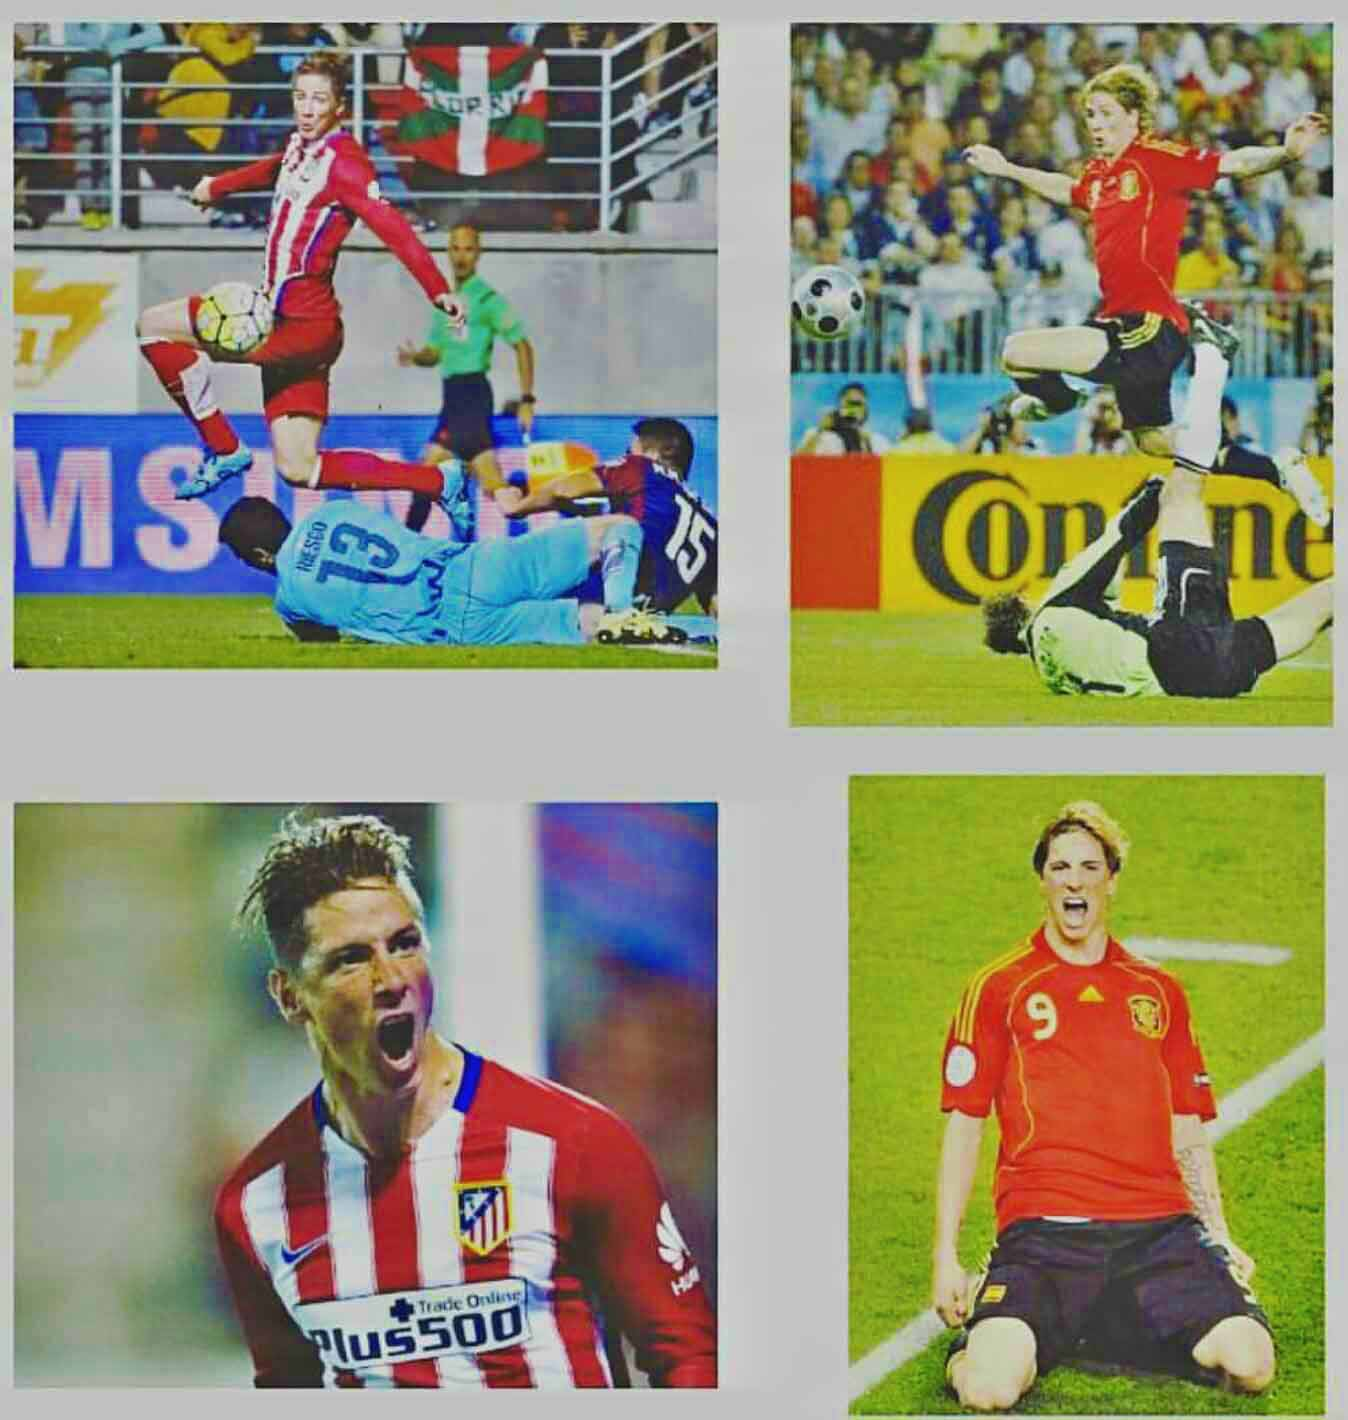 http://s6.picofile.com/file/8213201500/Fernando_Torres_two_same_goals_By_F9Tfans_ir.jpg